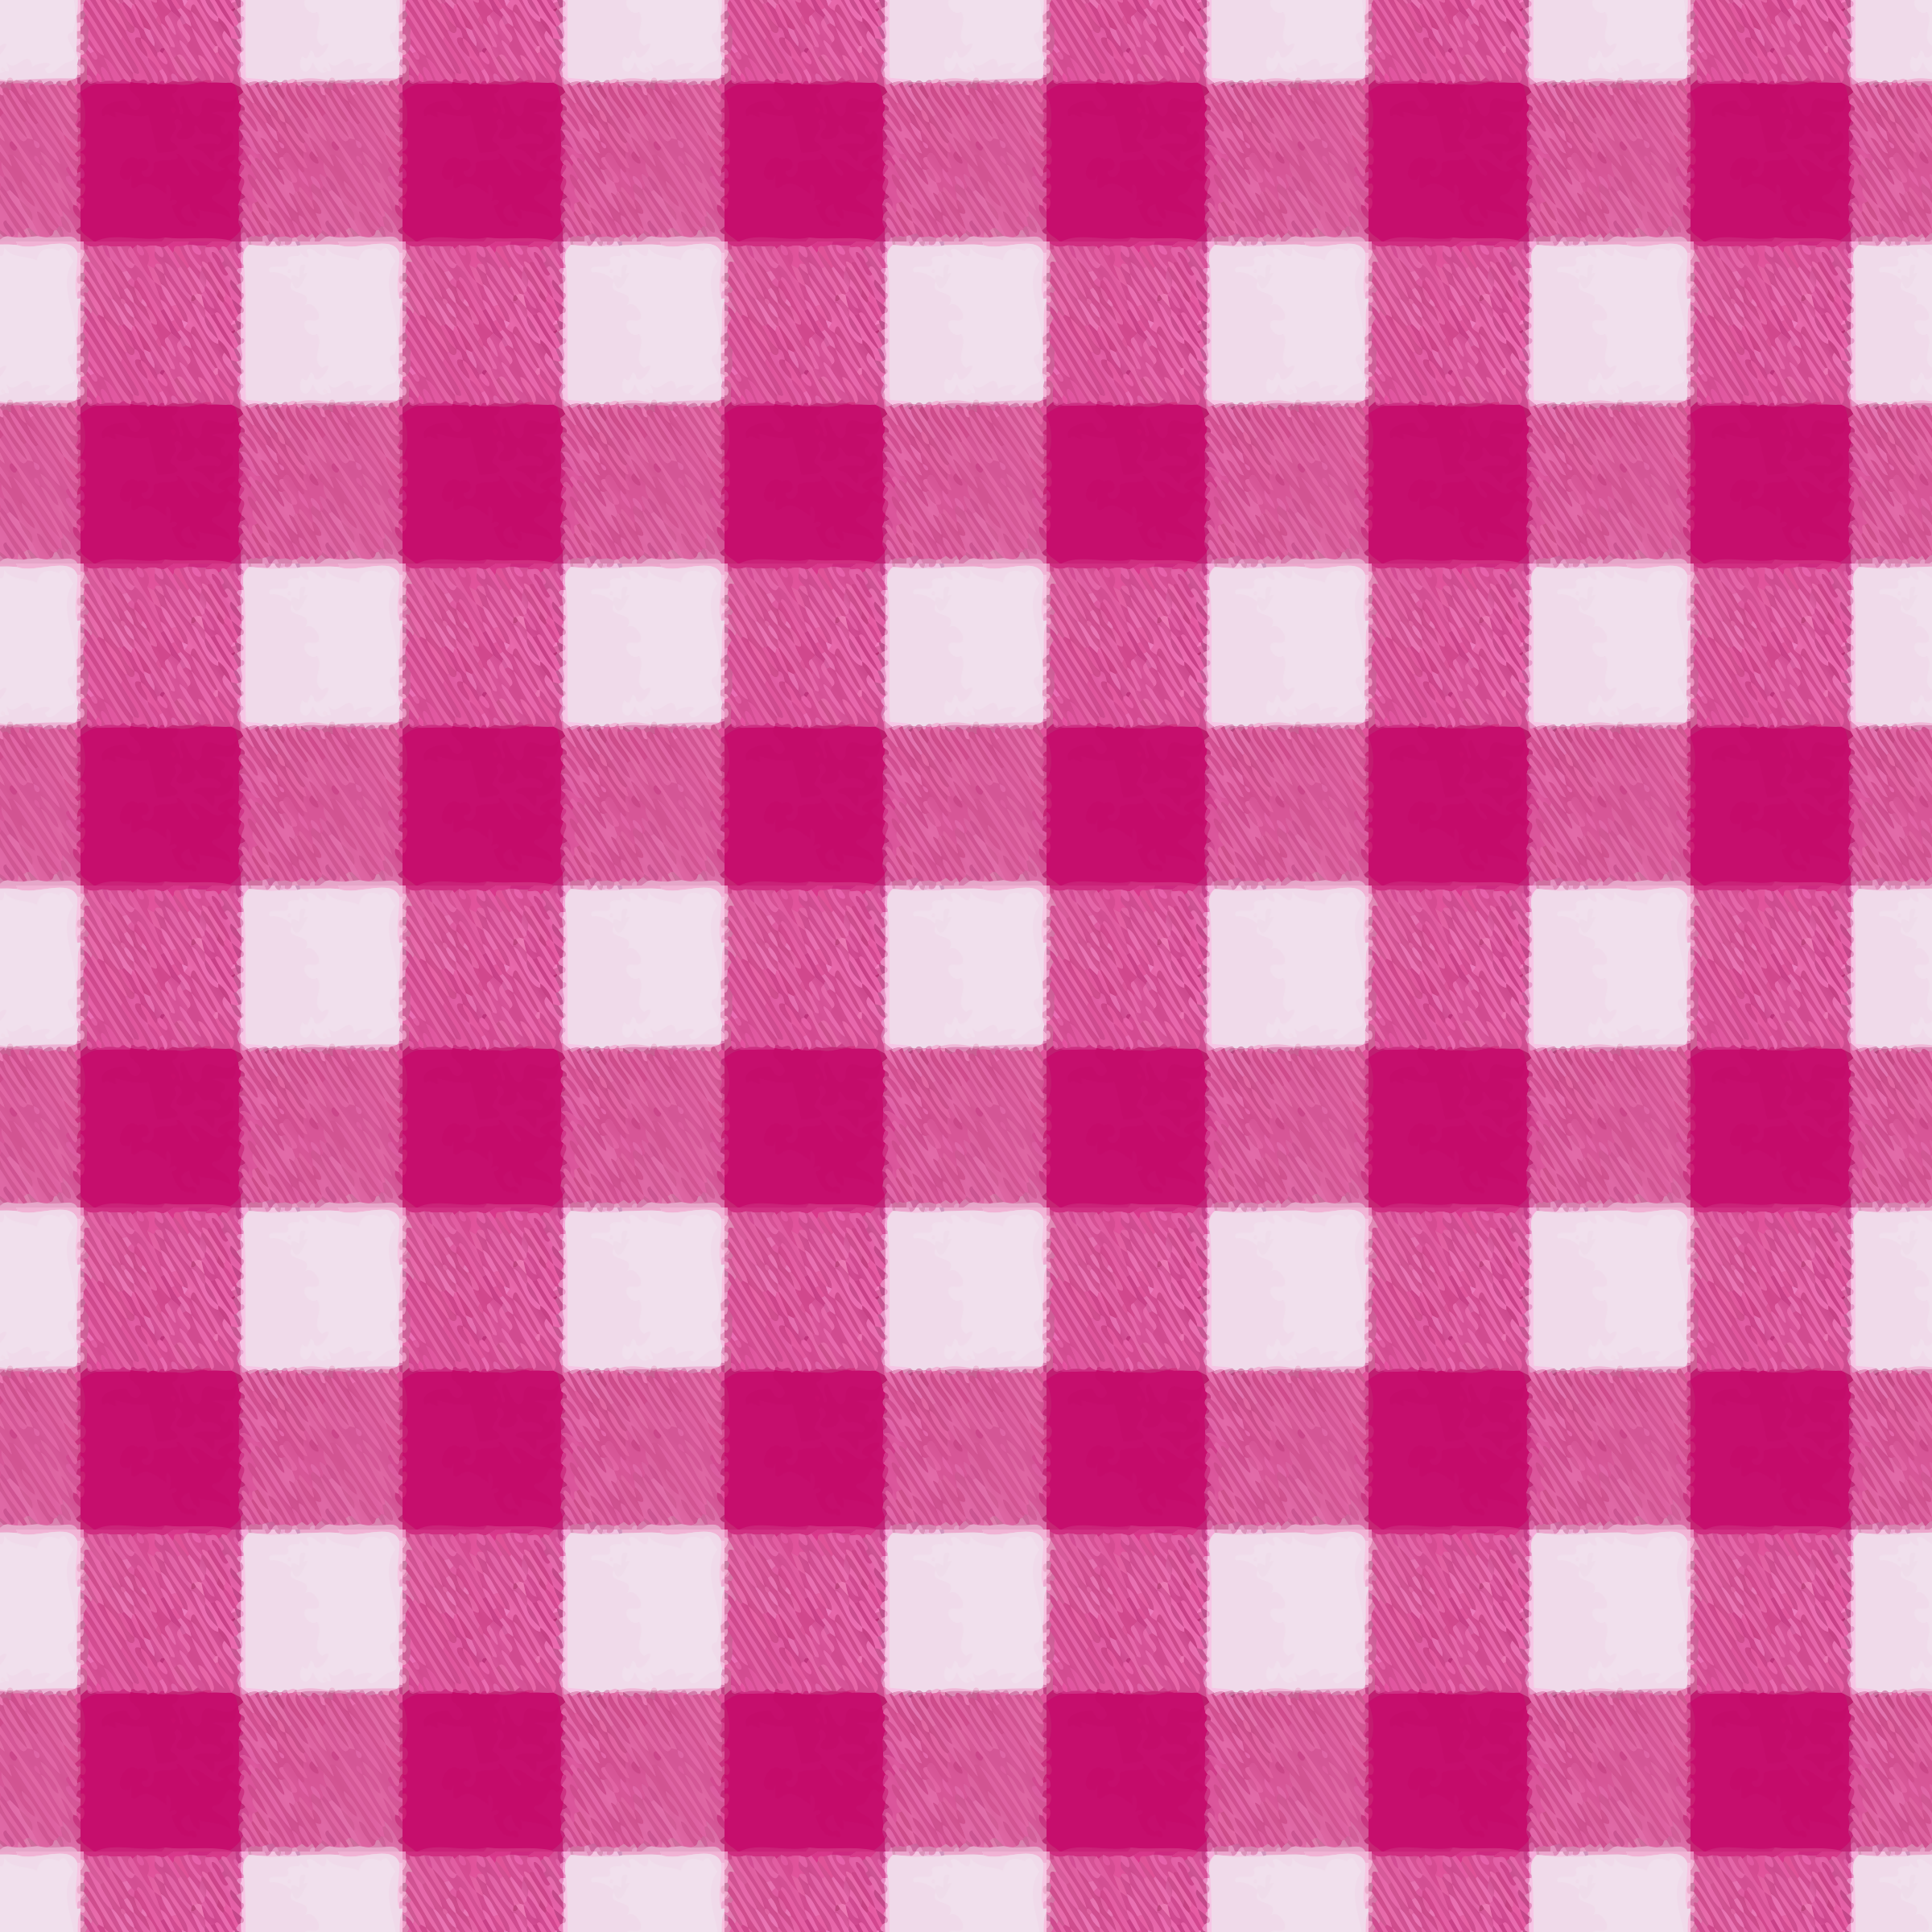 Chequered tablecloth (colour 2) by Firkin